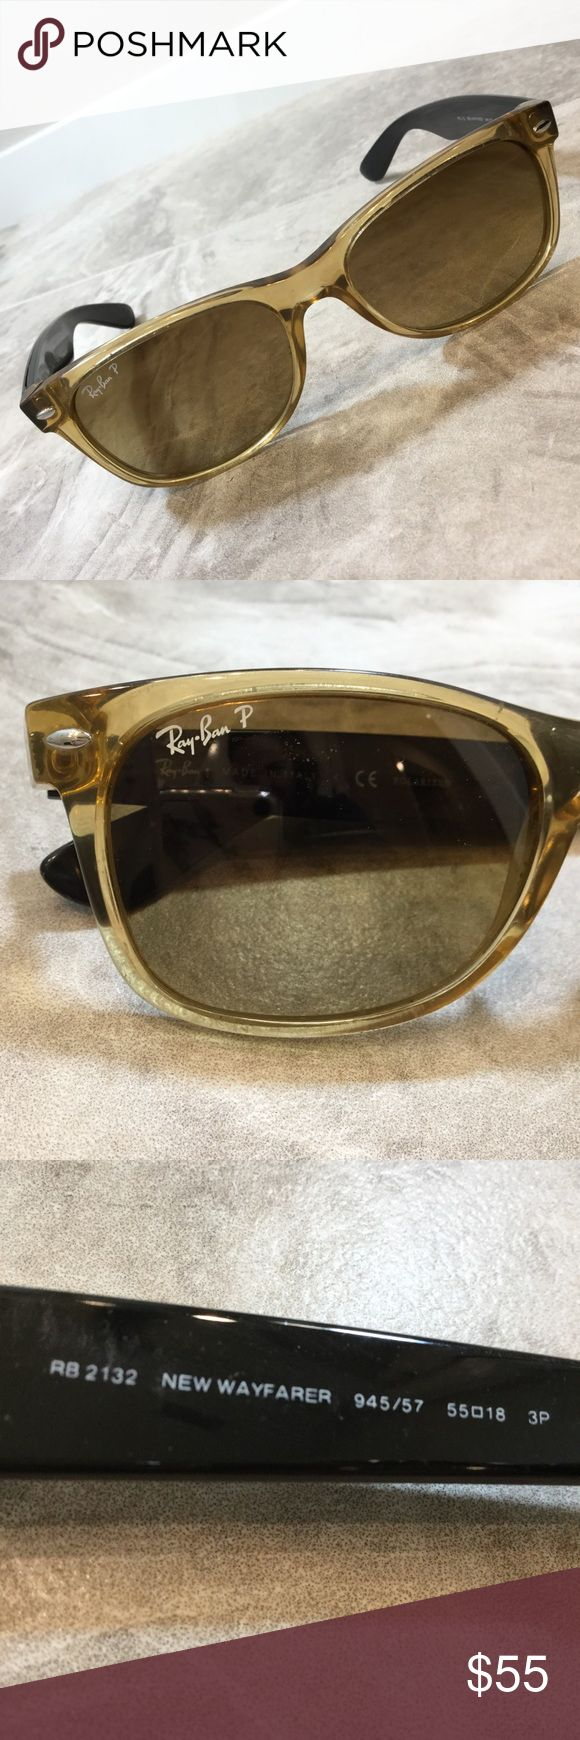 Ray Ban Polarized New Wayfarer Ray Ban P polarized New Wayfarer sunglasses in a translucent smokey quartz color with solid brown arms. Gently used. Ray-Ban Accessories Sunglasses